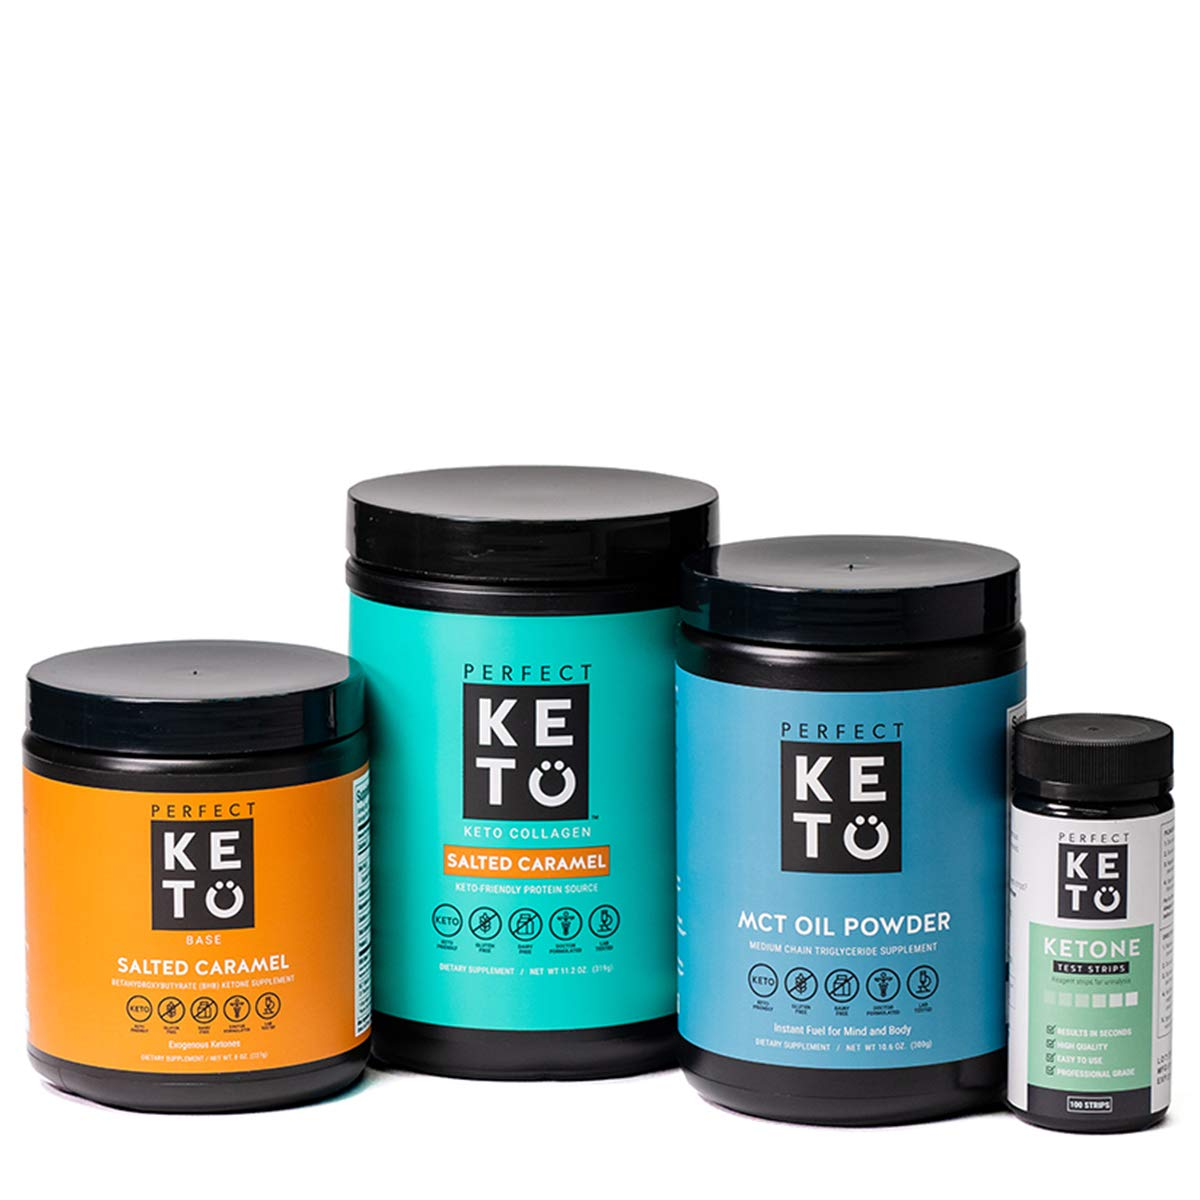 The Perfect Keto Starter Bundle for Ketogenic Diet   Best to Burn Fat and Support Energy   Includes Collagen, MCT Oil, Exogenous Ketone Base & Testing Strips (Salted Caramel) by Perfect Keto